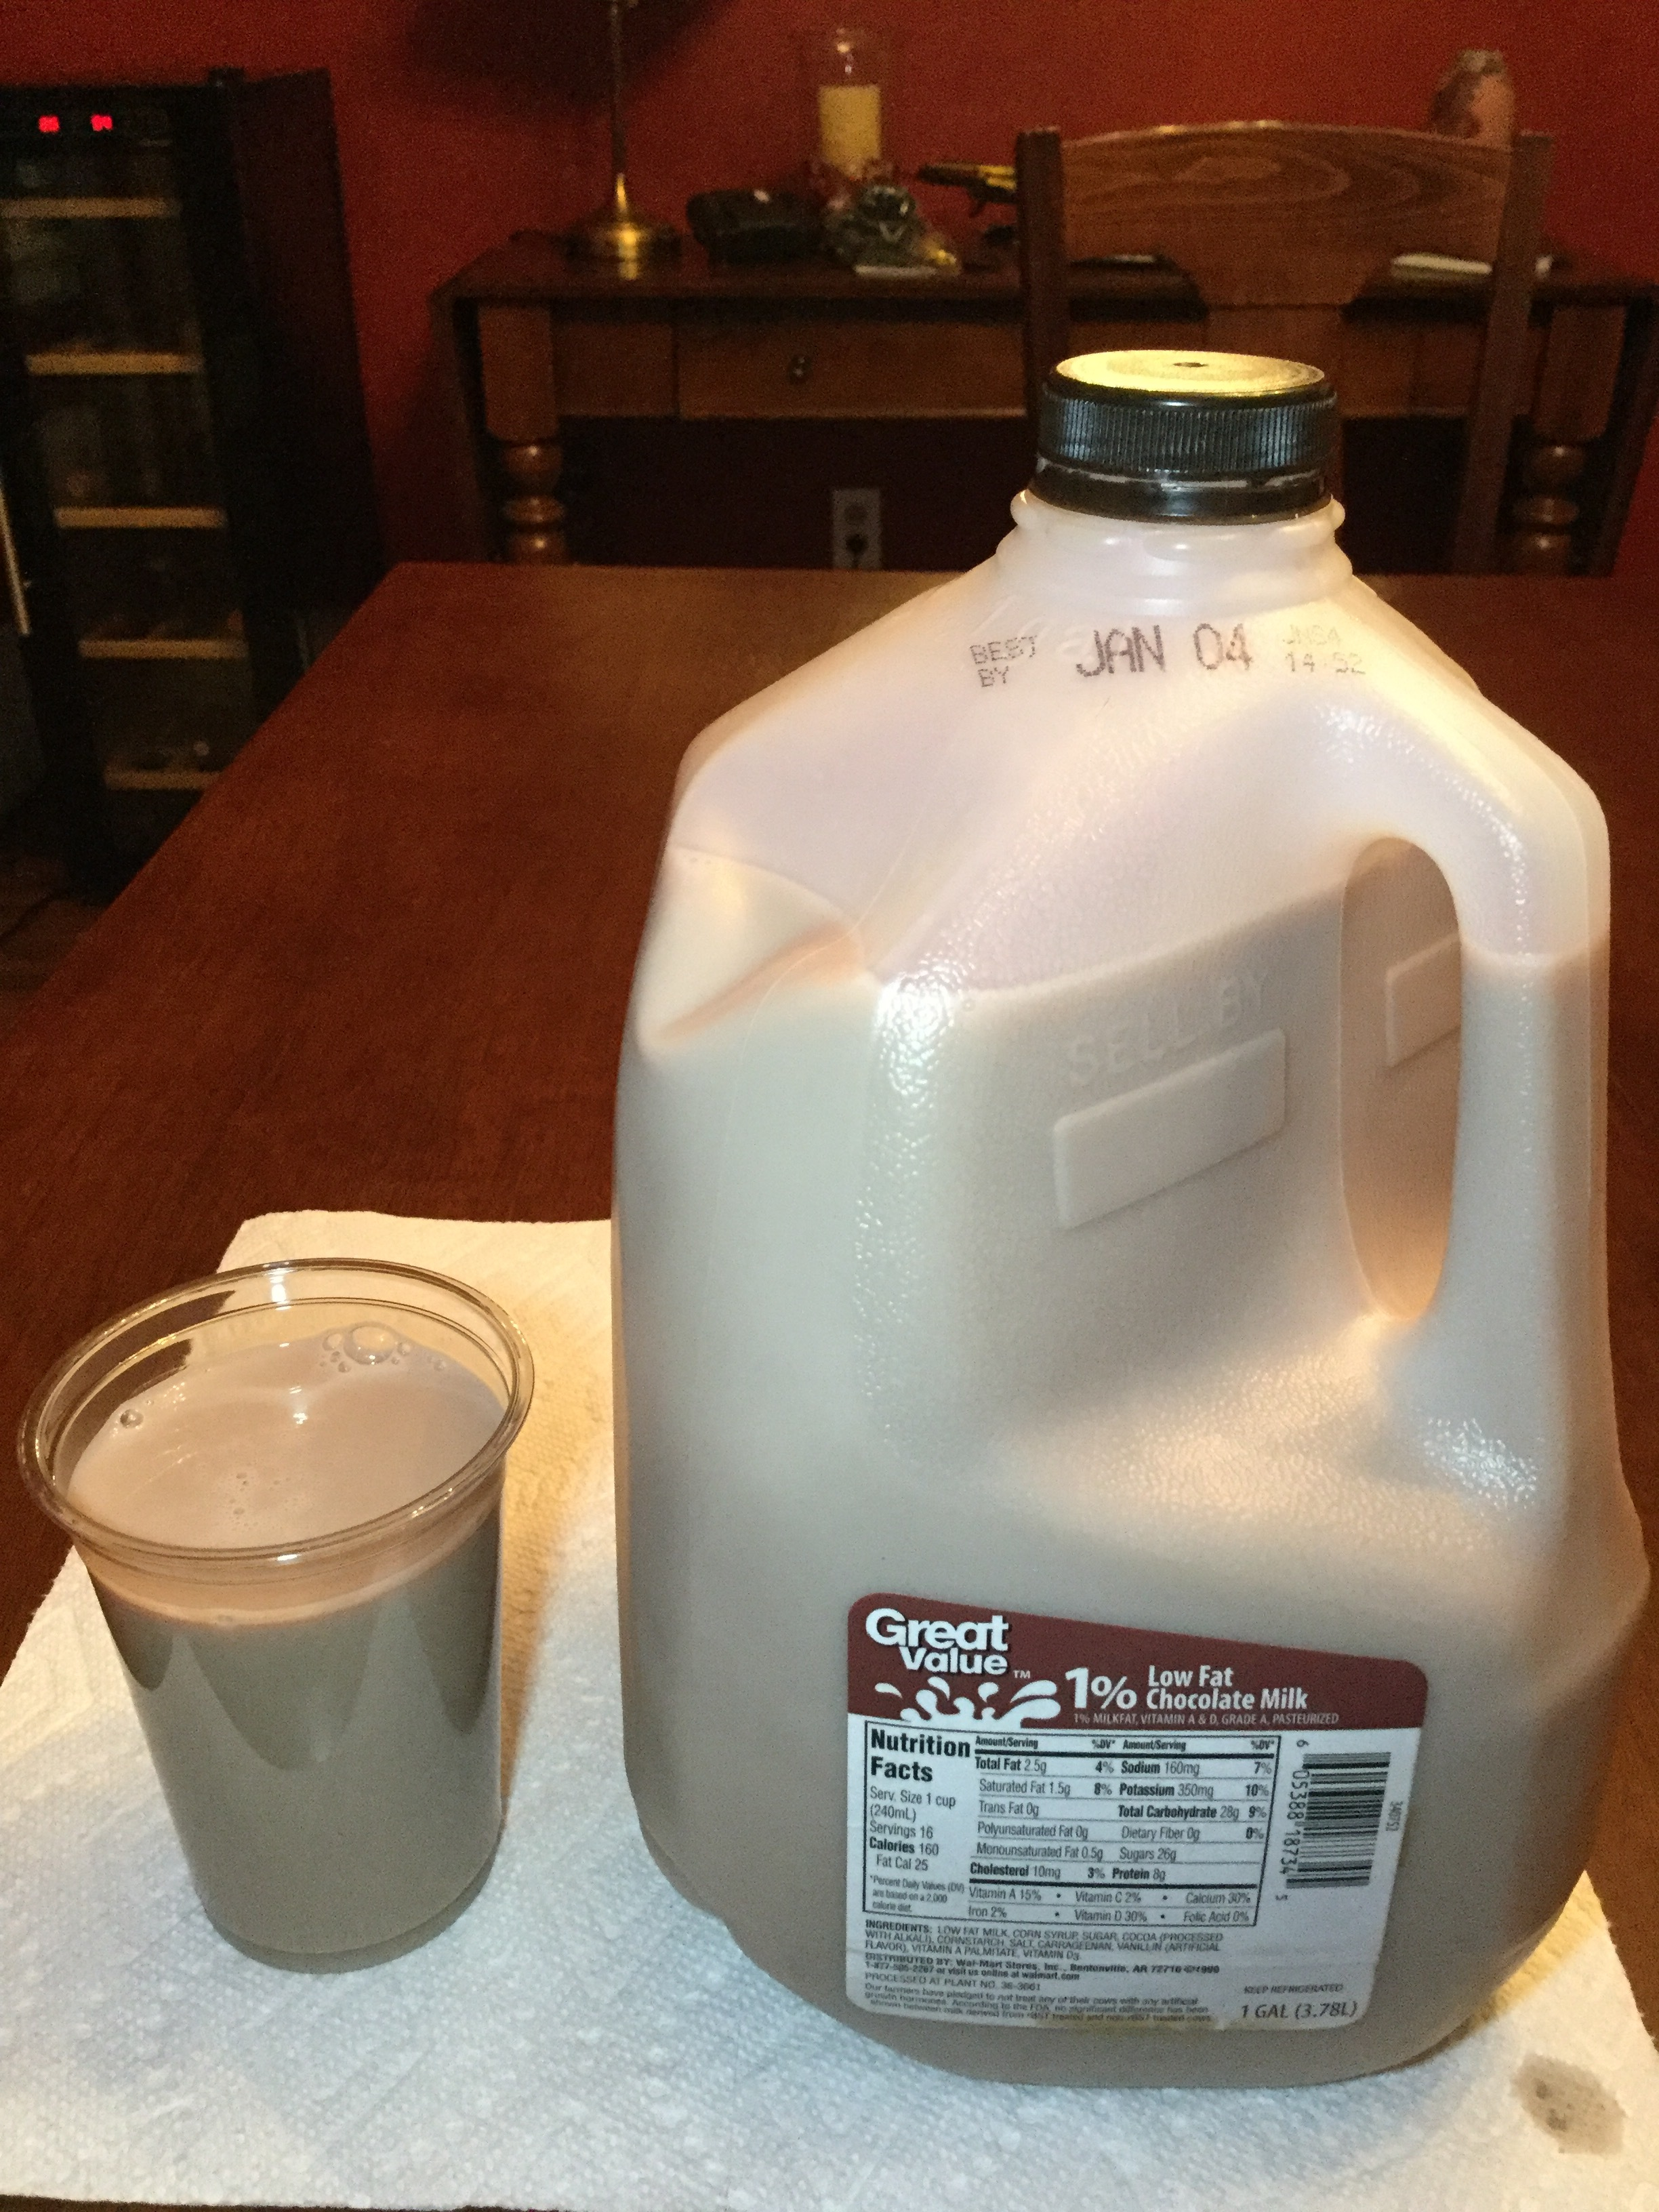 Great Value 1% Low Fat Chocolate Milk Cup